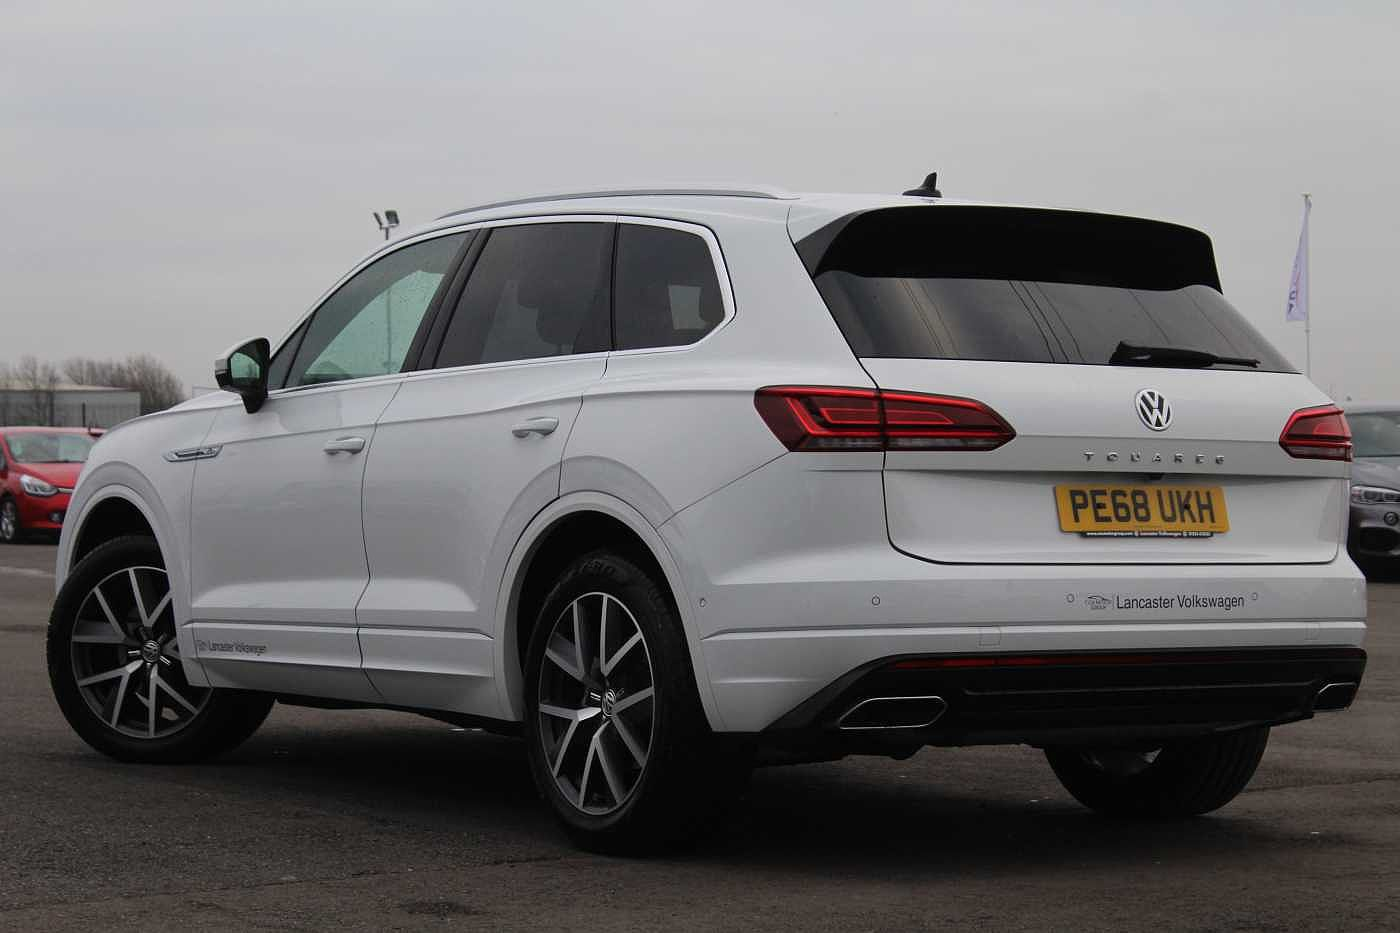 Volkswagen Touareg Images